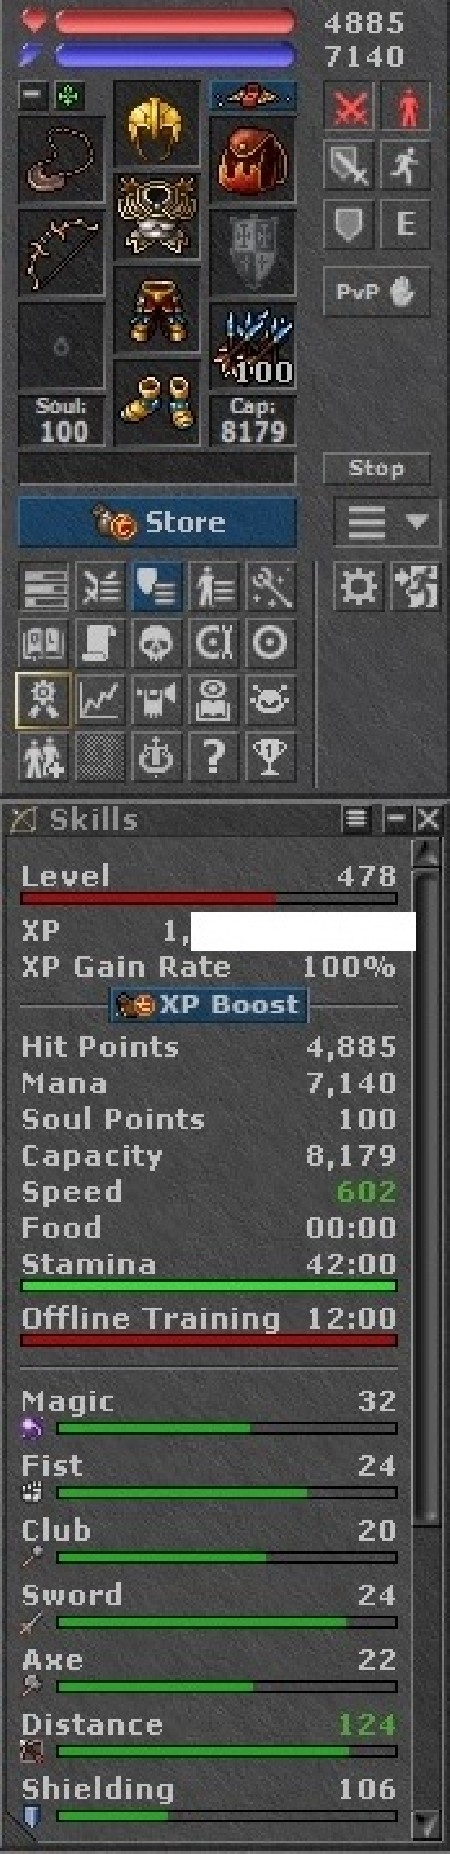 Tibia Character Open-PvP ~478 RP